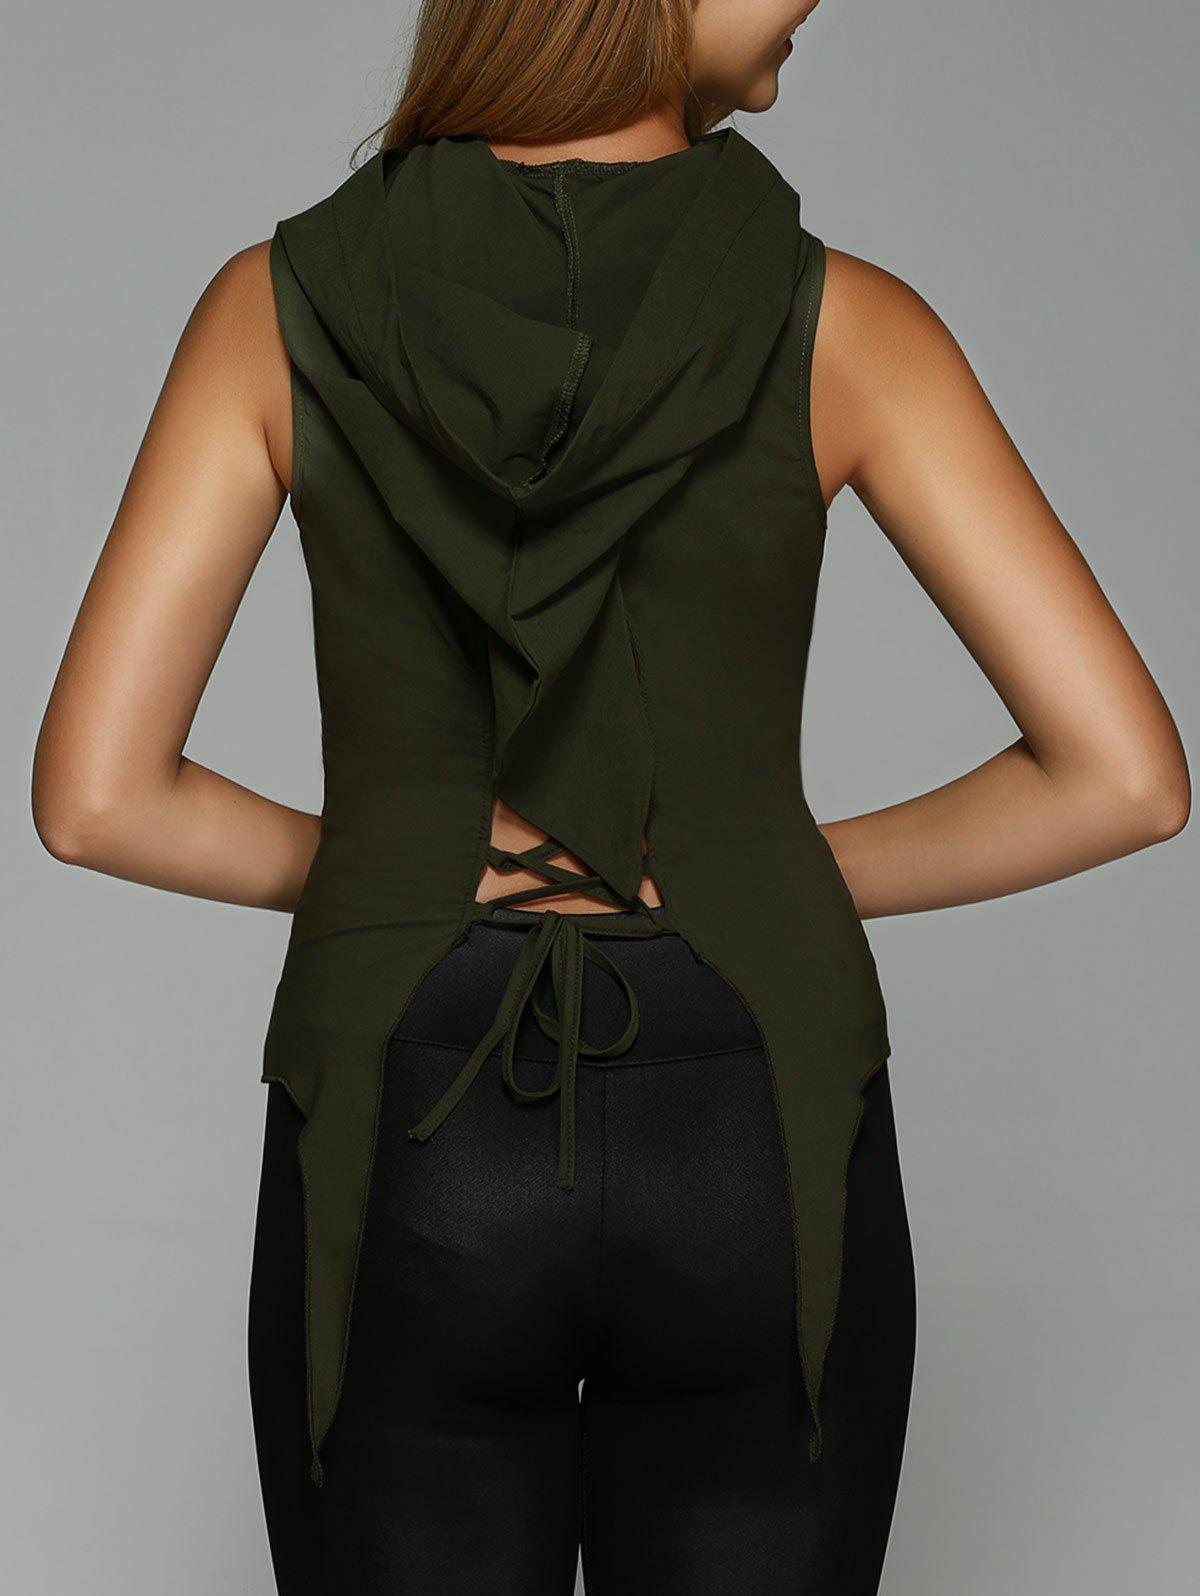 Hooded Lace-Up Asymmetrical Tank TopWomen<br><br><br>Size: M<br>Color: BLACKISH GREEN